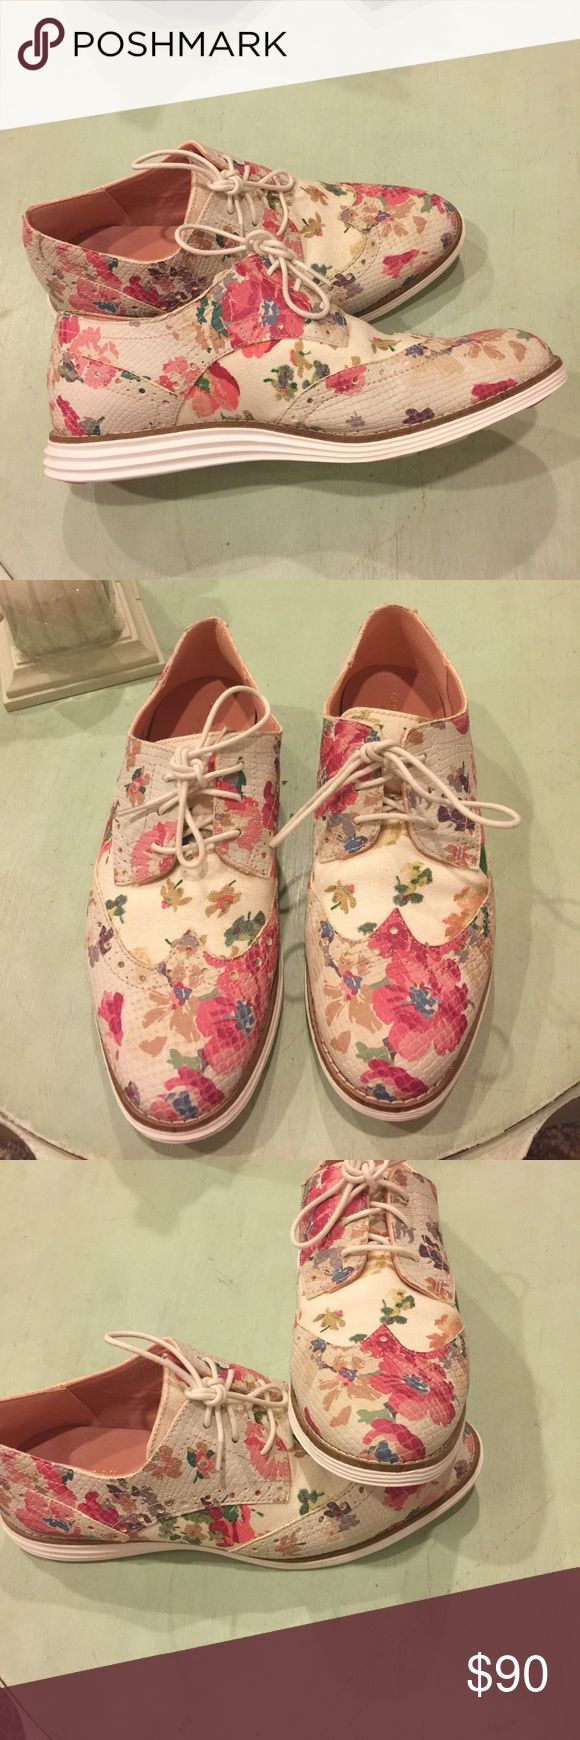 Floral Cole Hann shoes Gorgeous Cole hann floral print on canvas and snakeskin shoes - wing tip oxford with rubber sole- excellent condition-  size 7.5 B- tons of beautiful detail Cole Haan Shoes Flats & Loafers